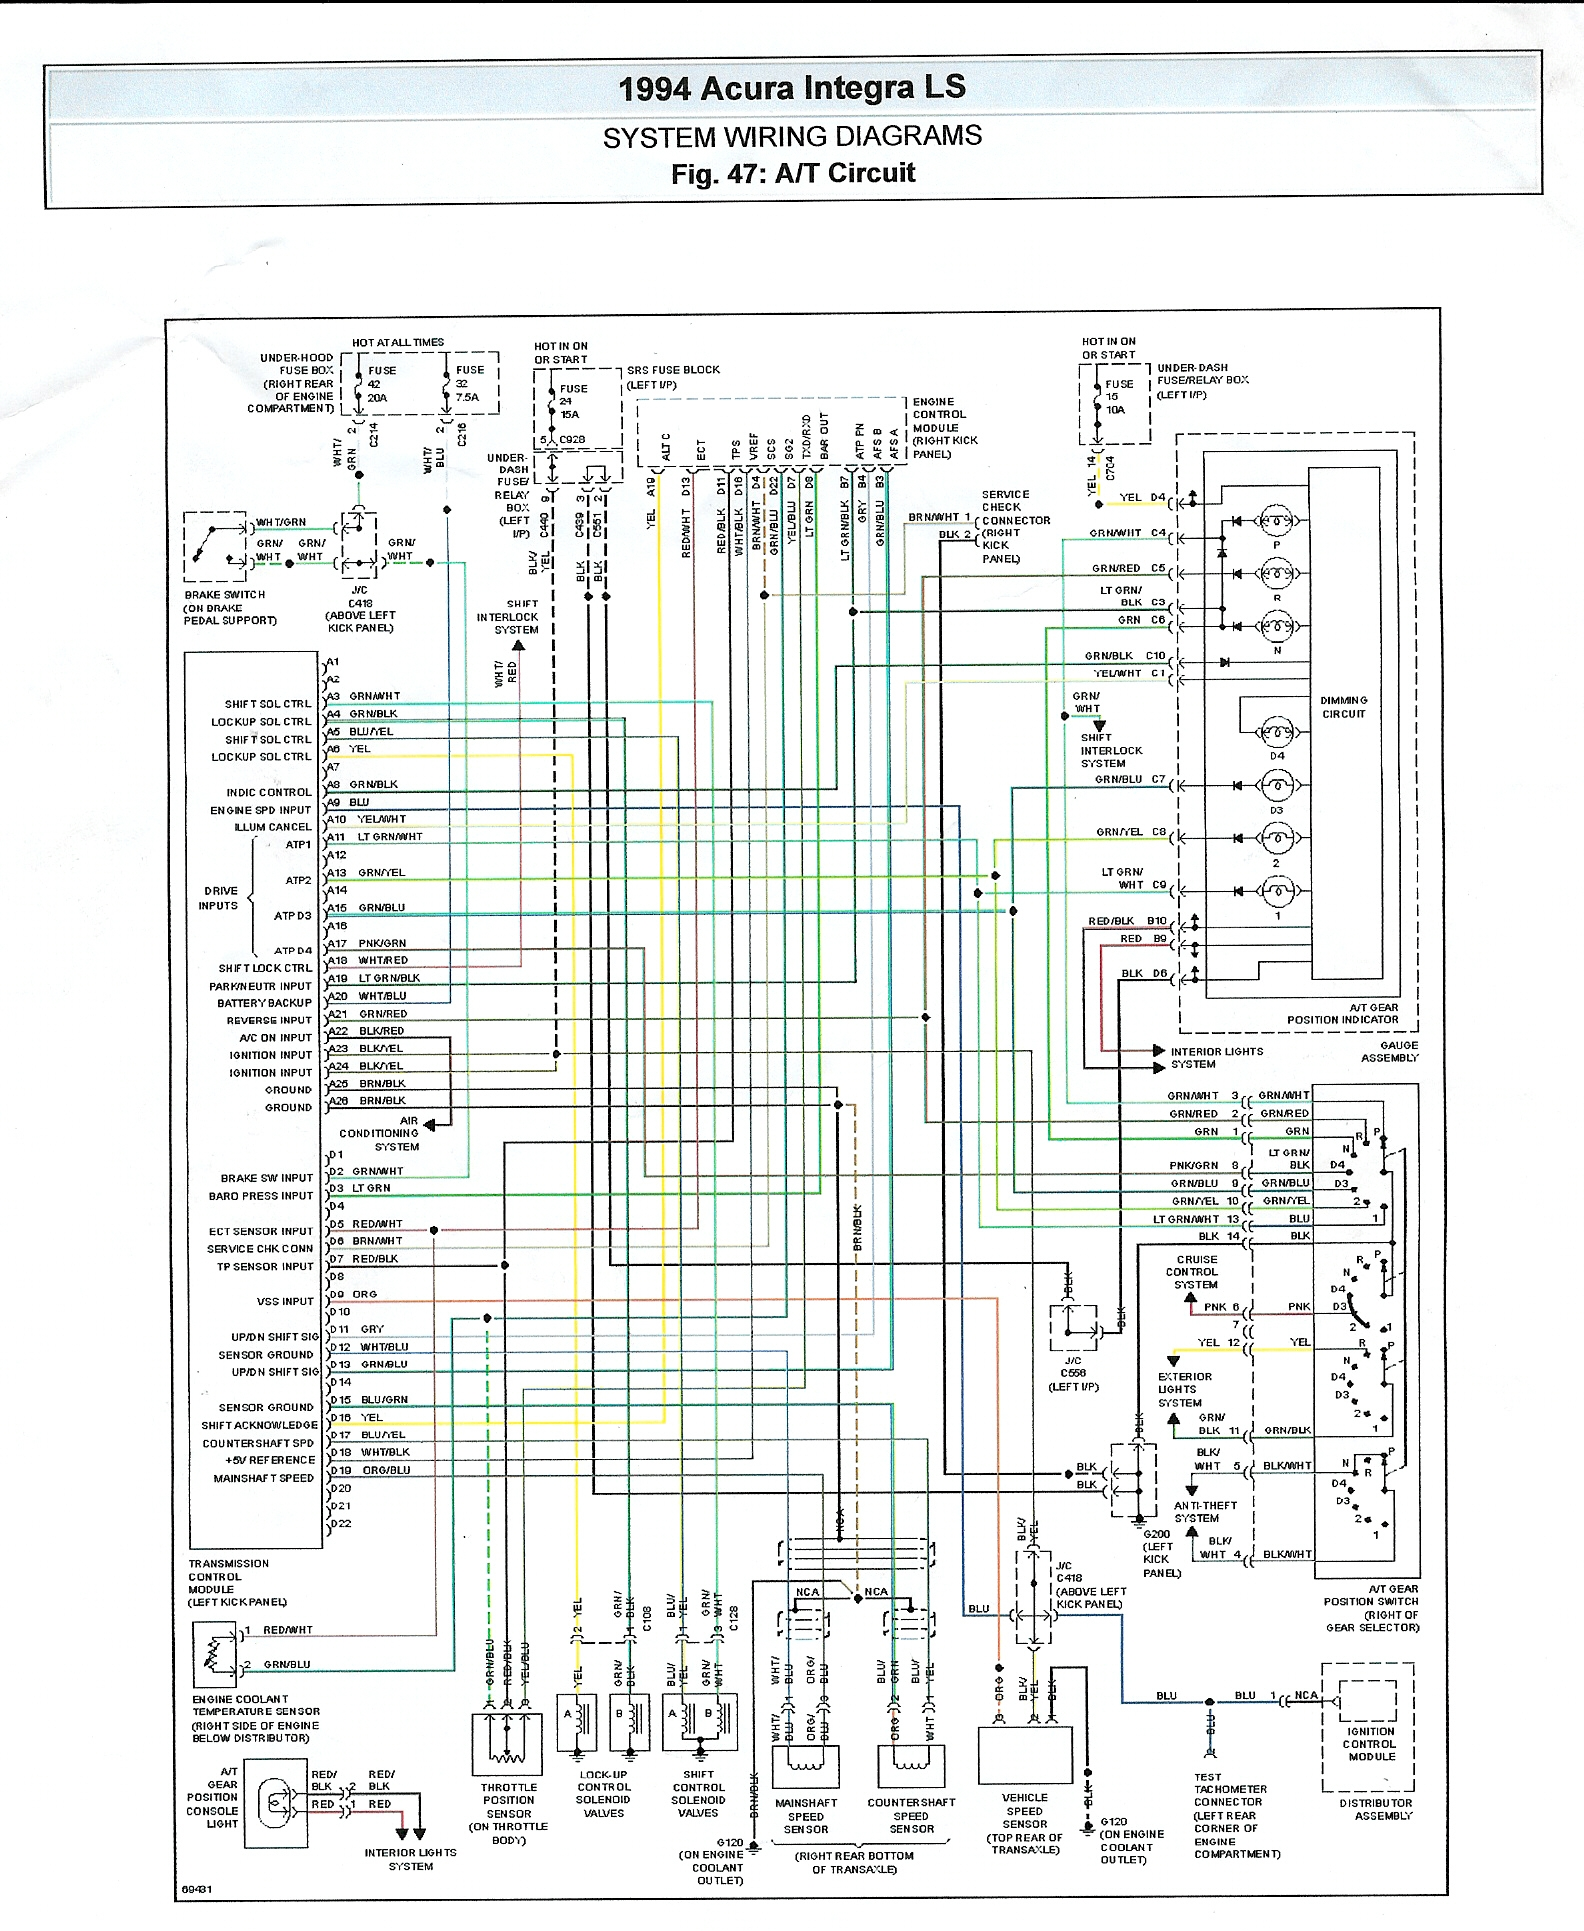 1991 Acura Integra Stereo Wiring Wiring Diagram For Light Switch \u2022 Acura  Integra Hatchback 1991 Acura Integra Fuse Diagram